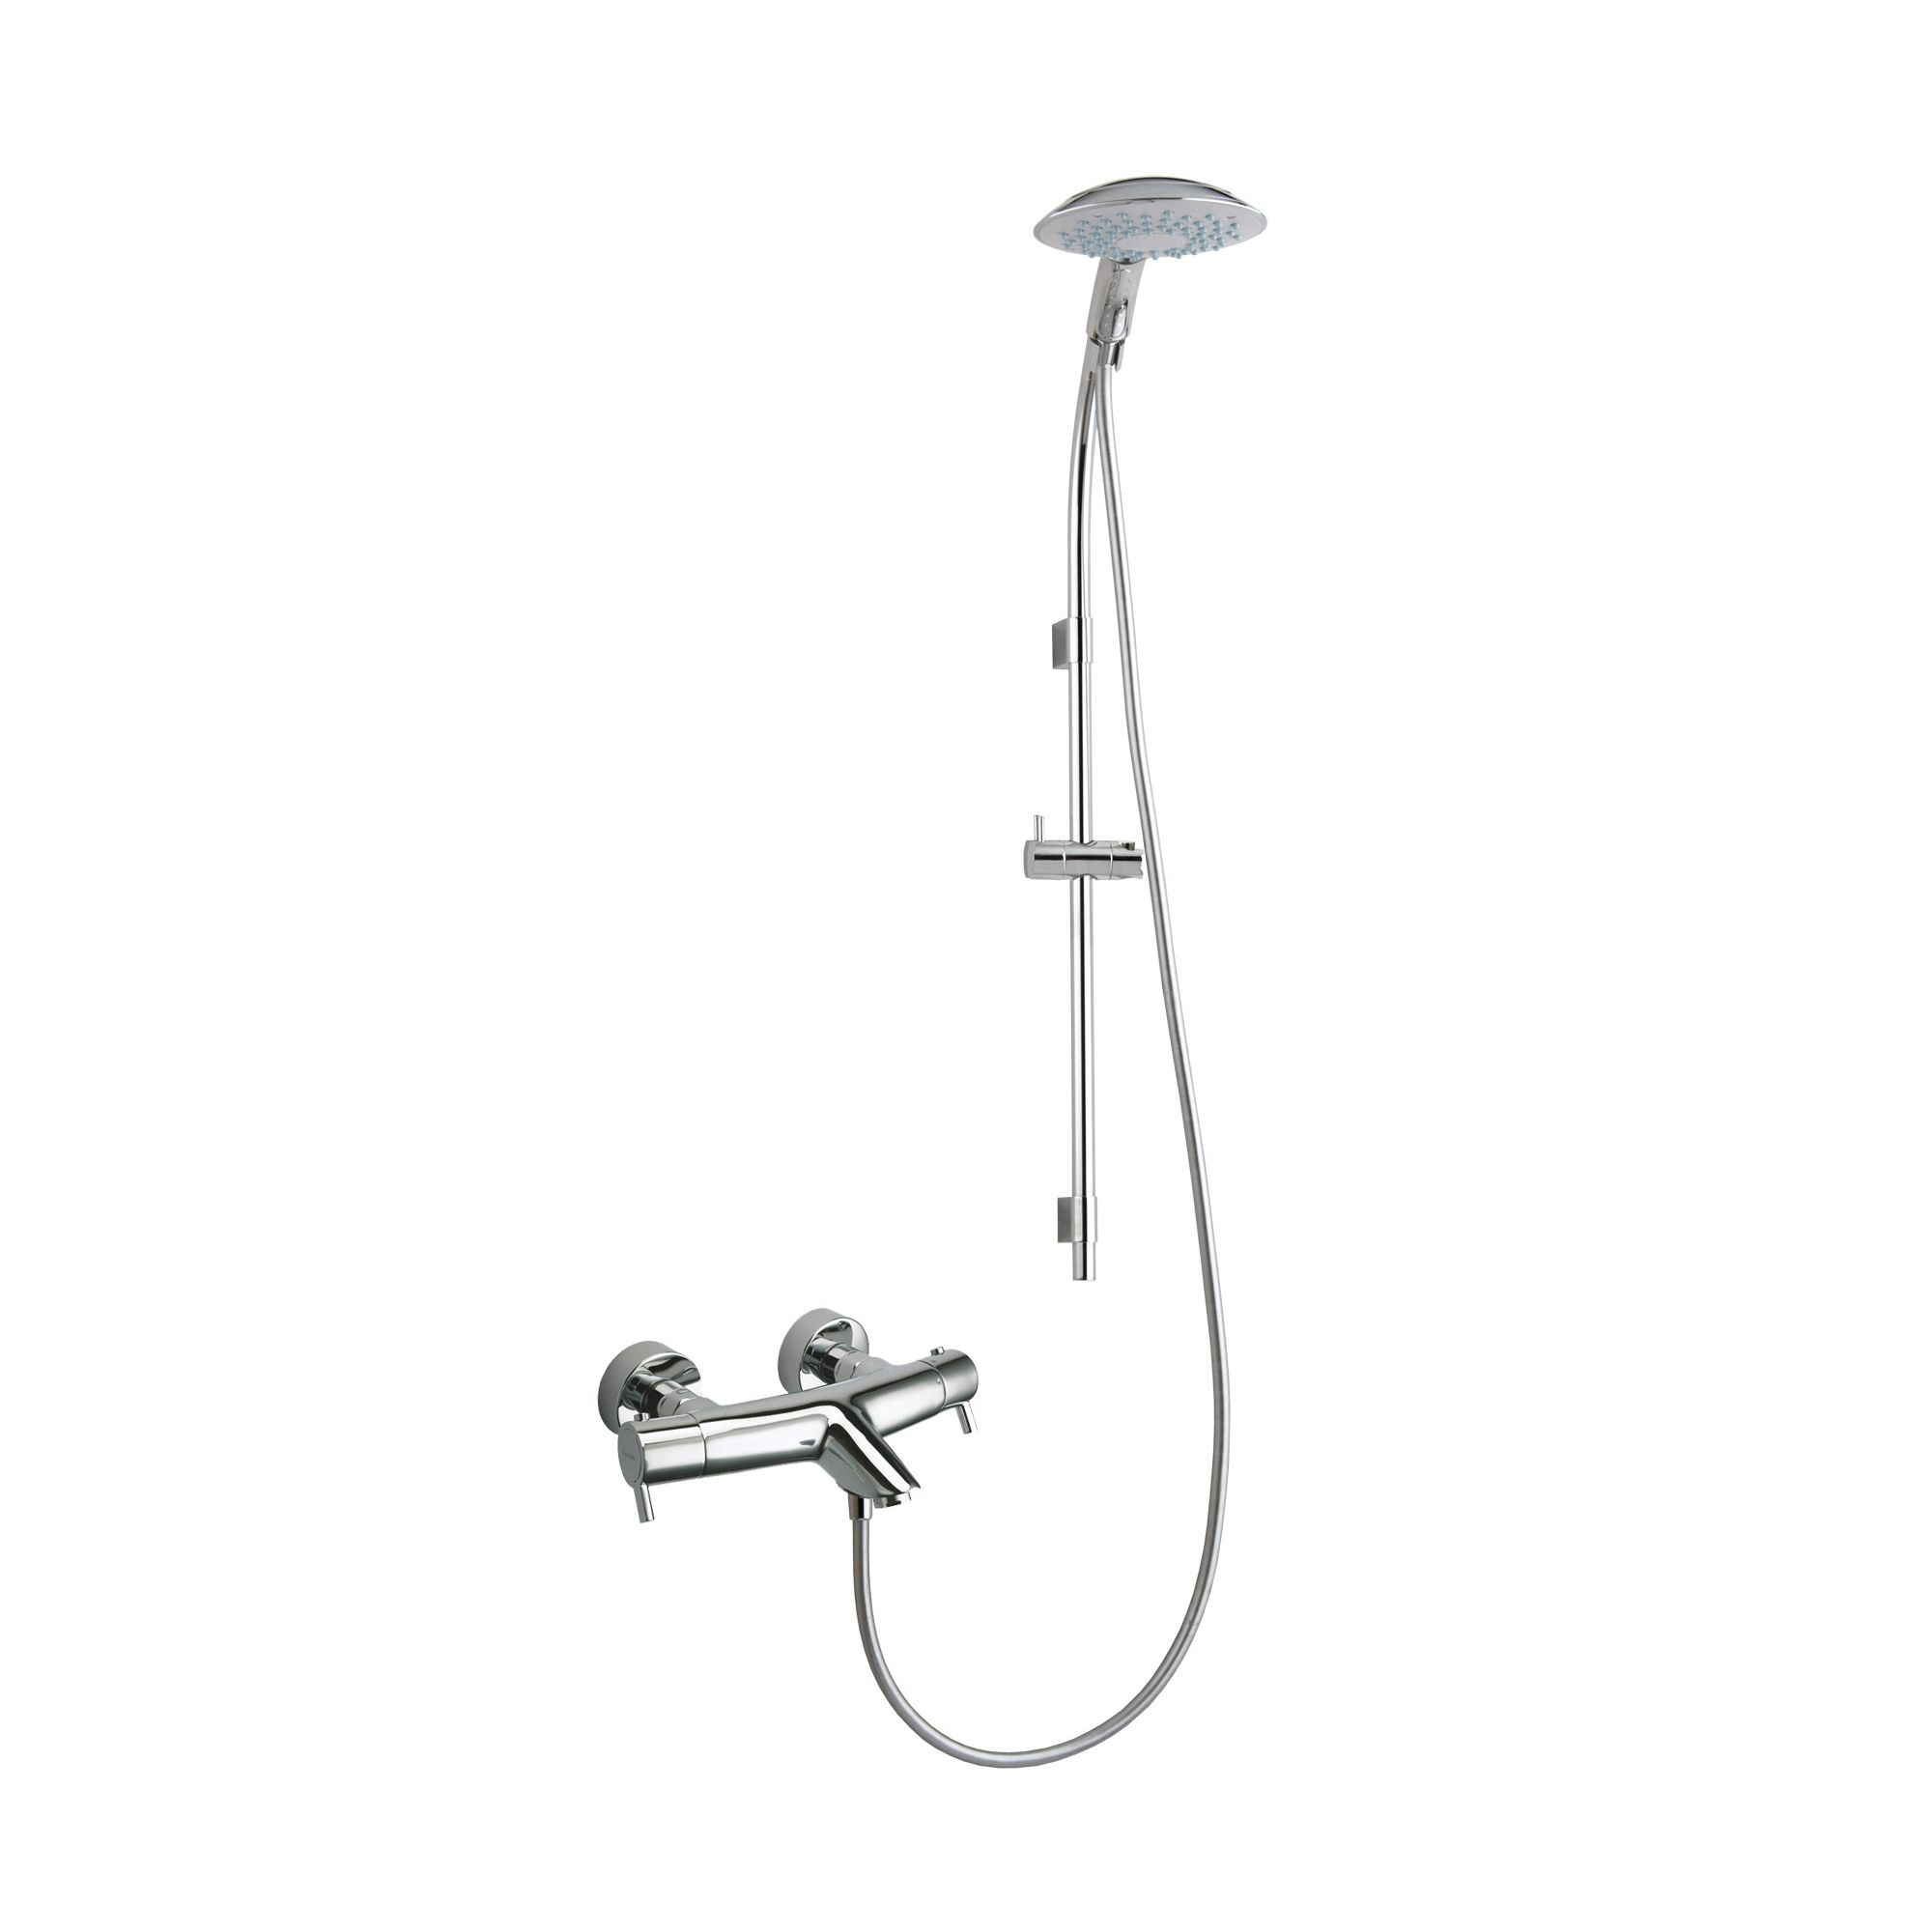 Ramon Soler Thermodrako Exposed Thermostatic Bath/Shower Mixer with Saturno Shower Kit at Tesco Direct